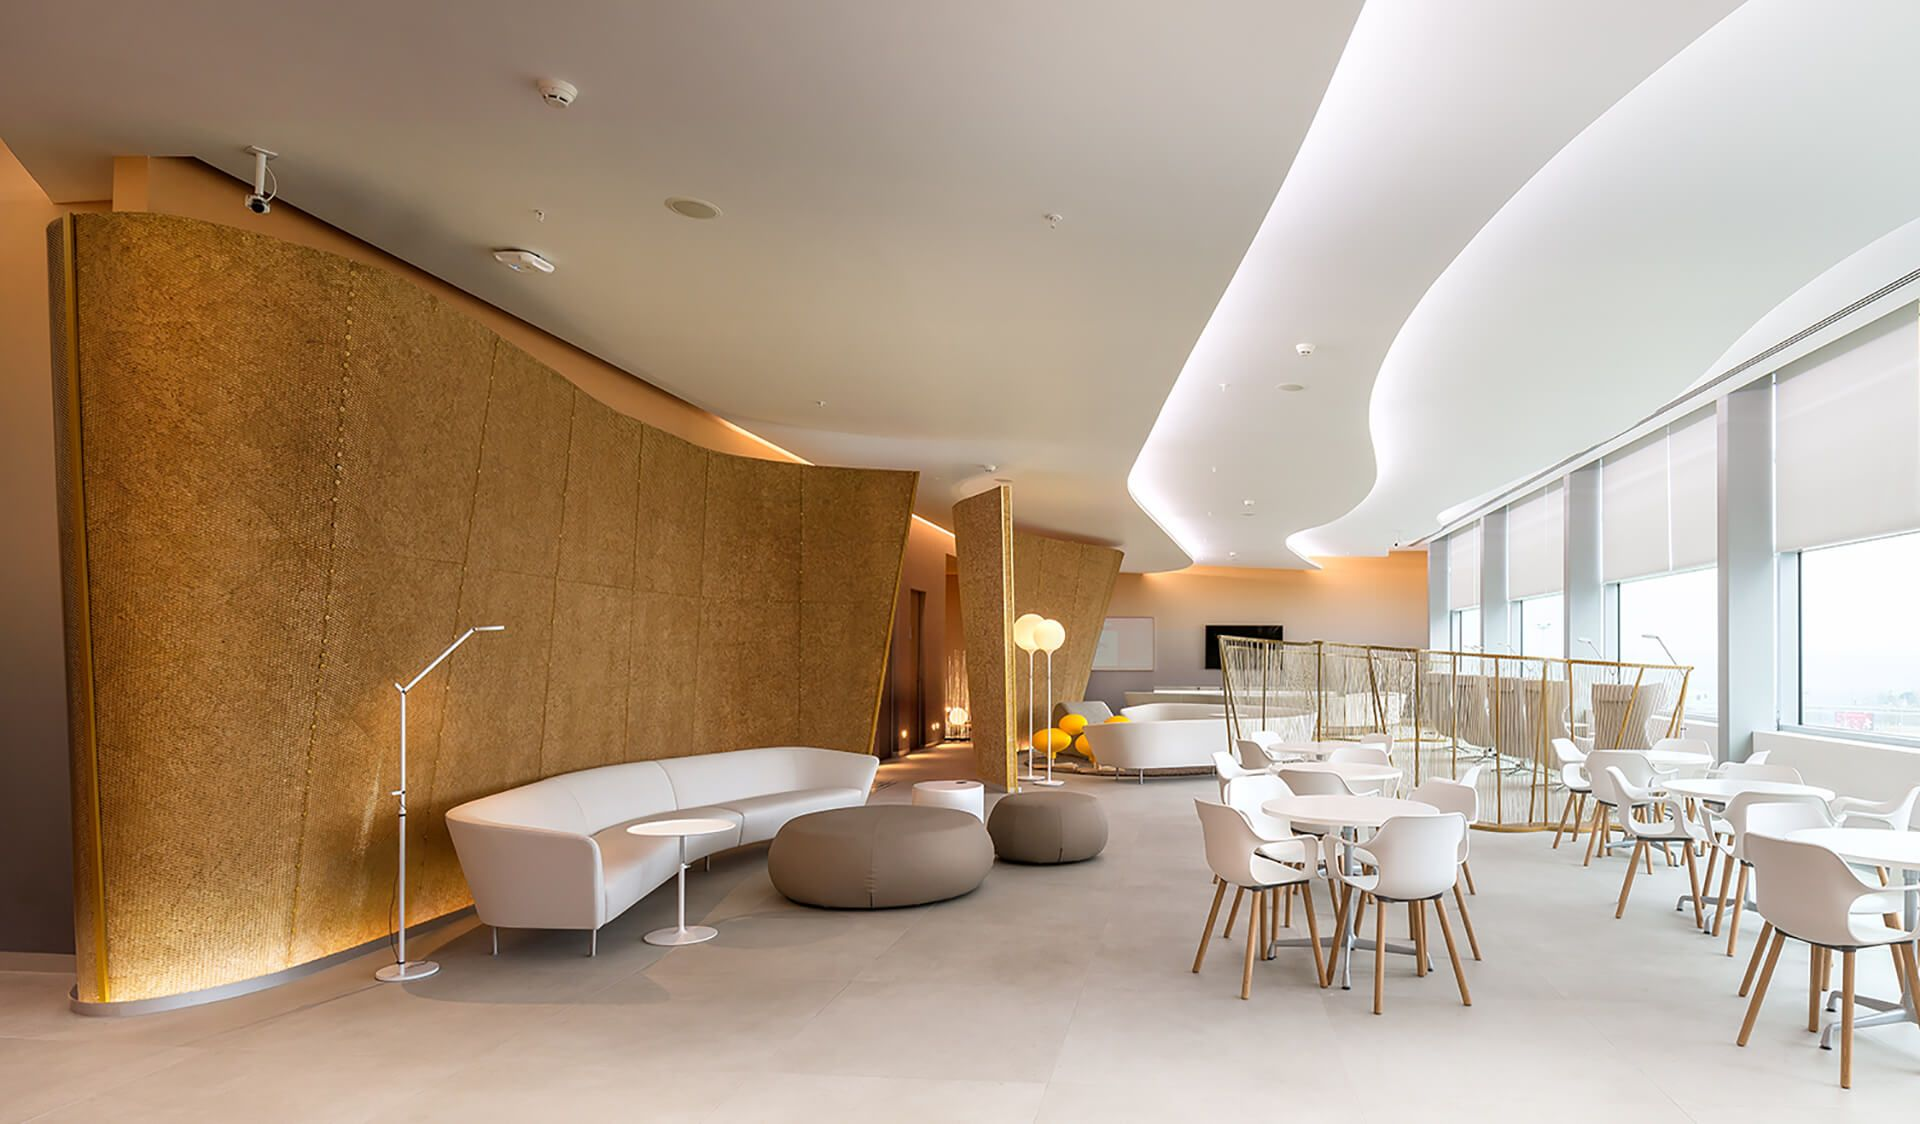 The New Vip Lounge At The Platov Airport Features An Italian Touch